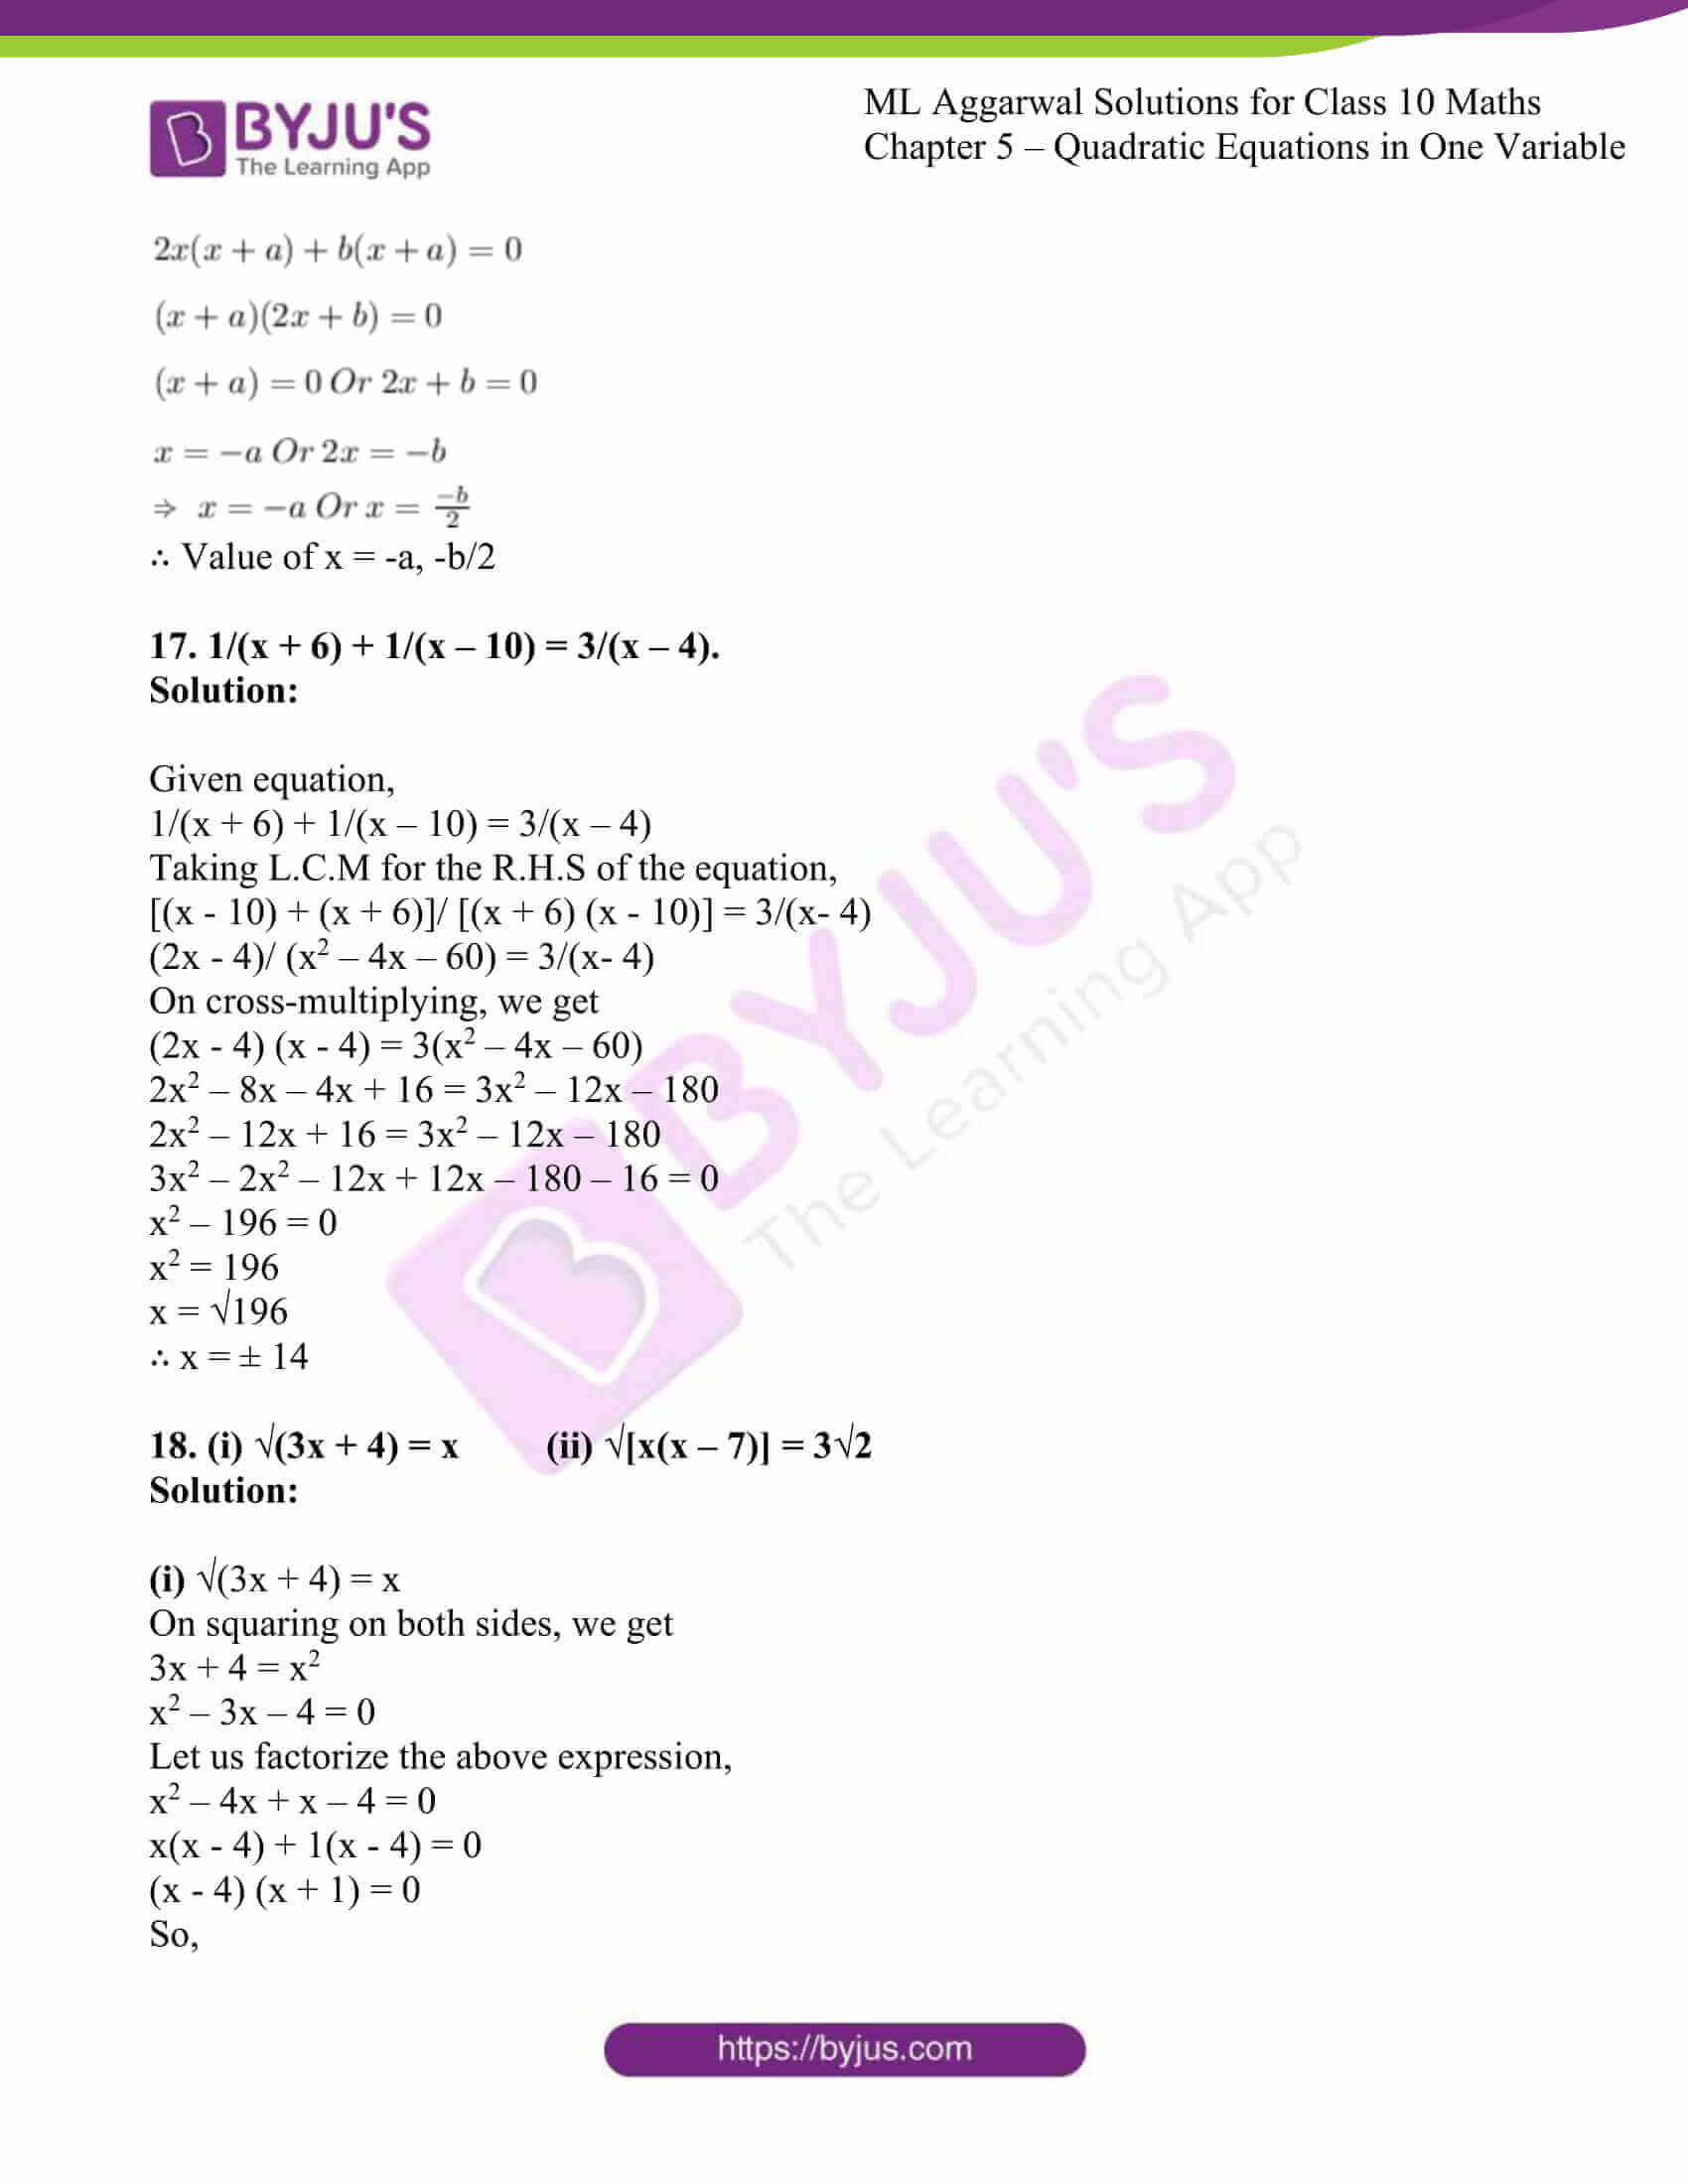 ml aggarwal solutions class 10 maths chapter 5 18